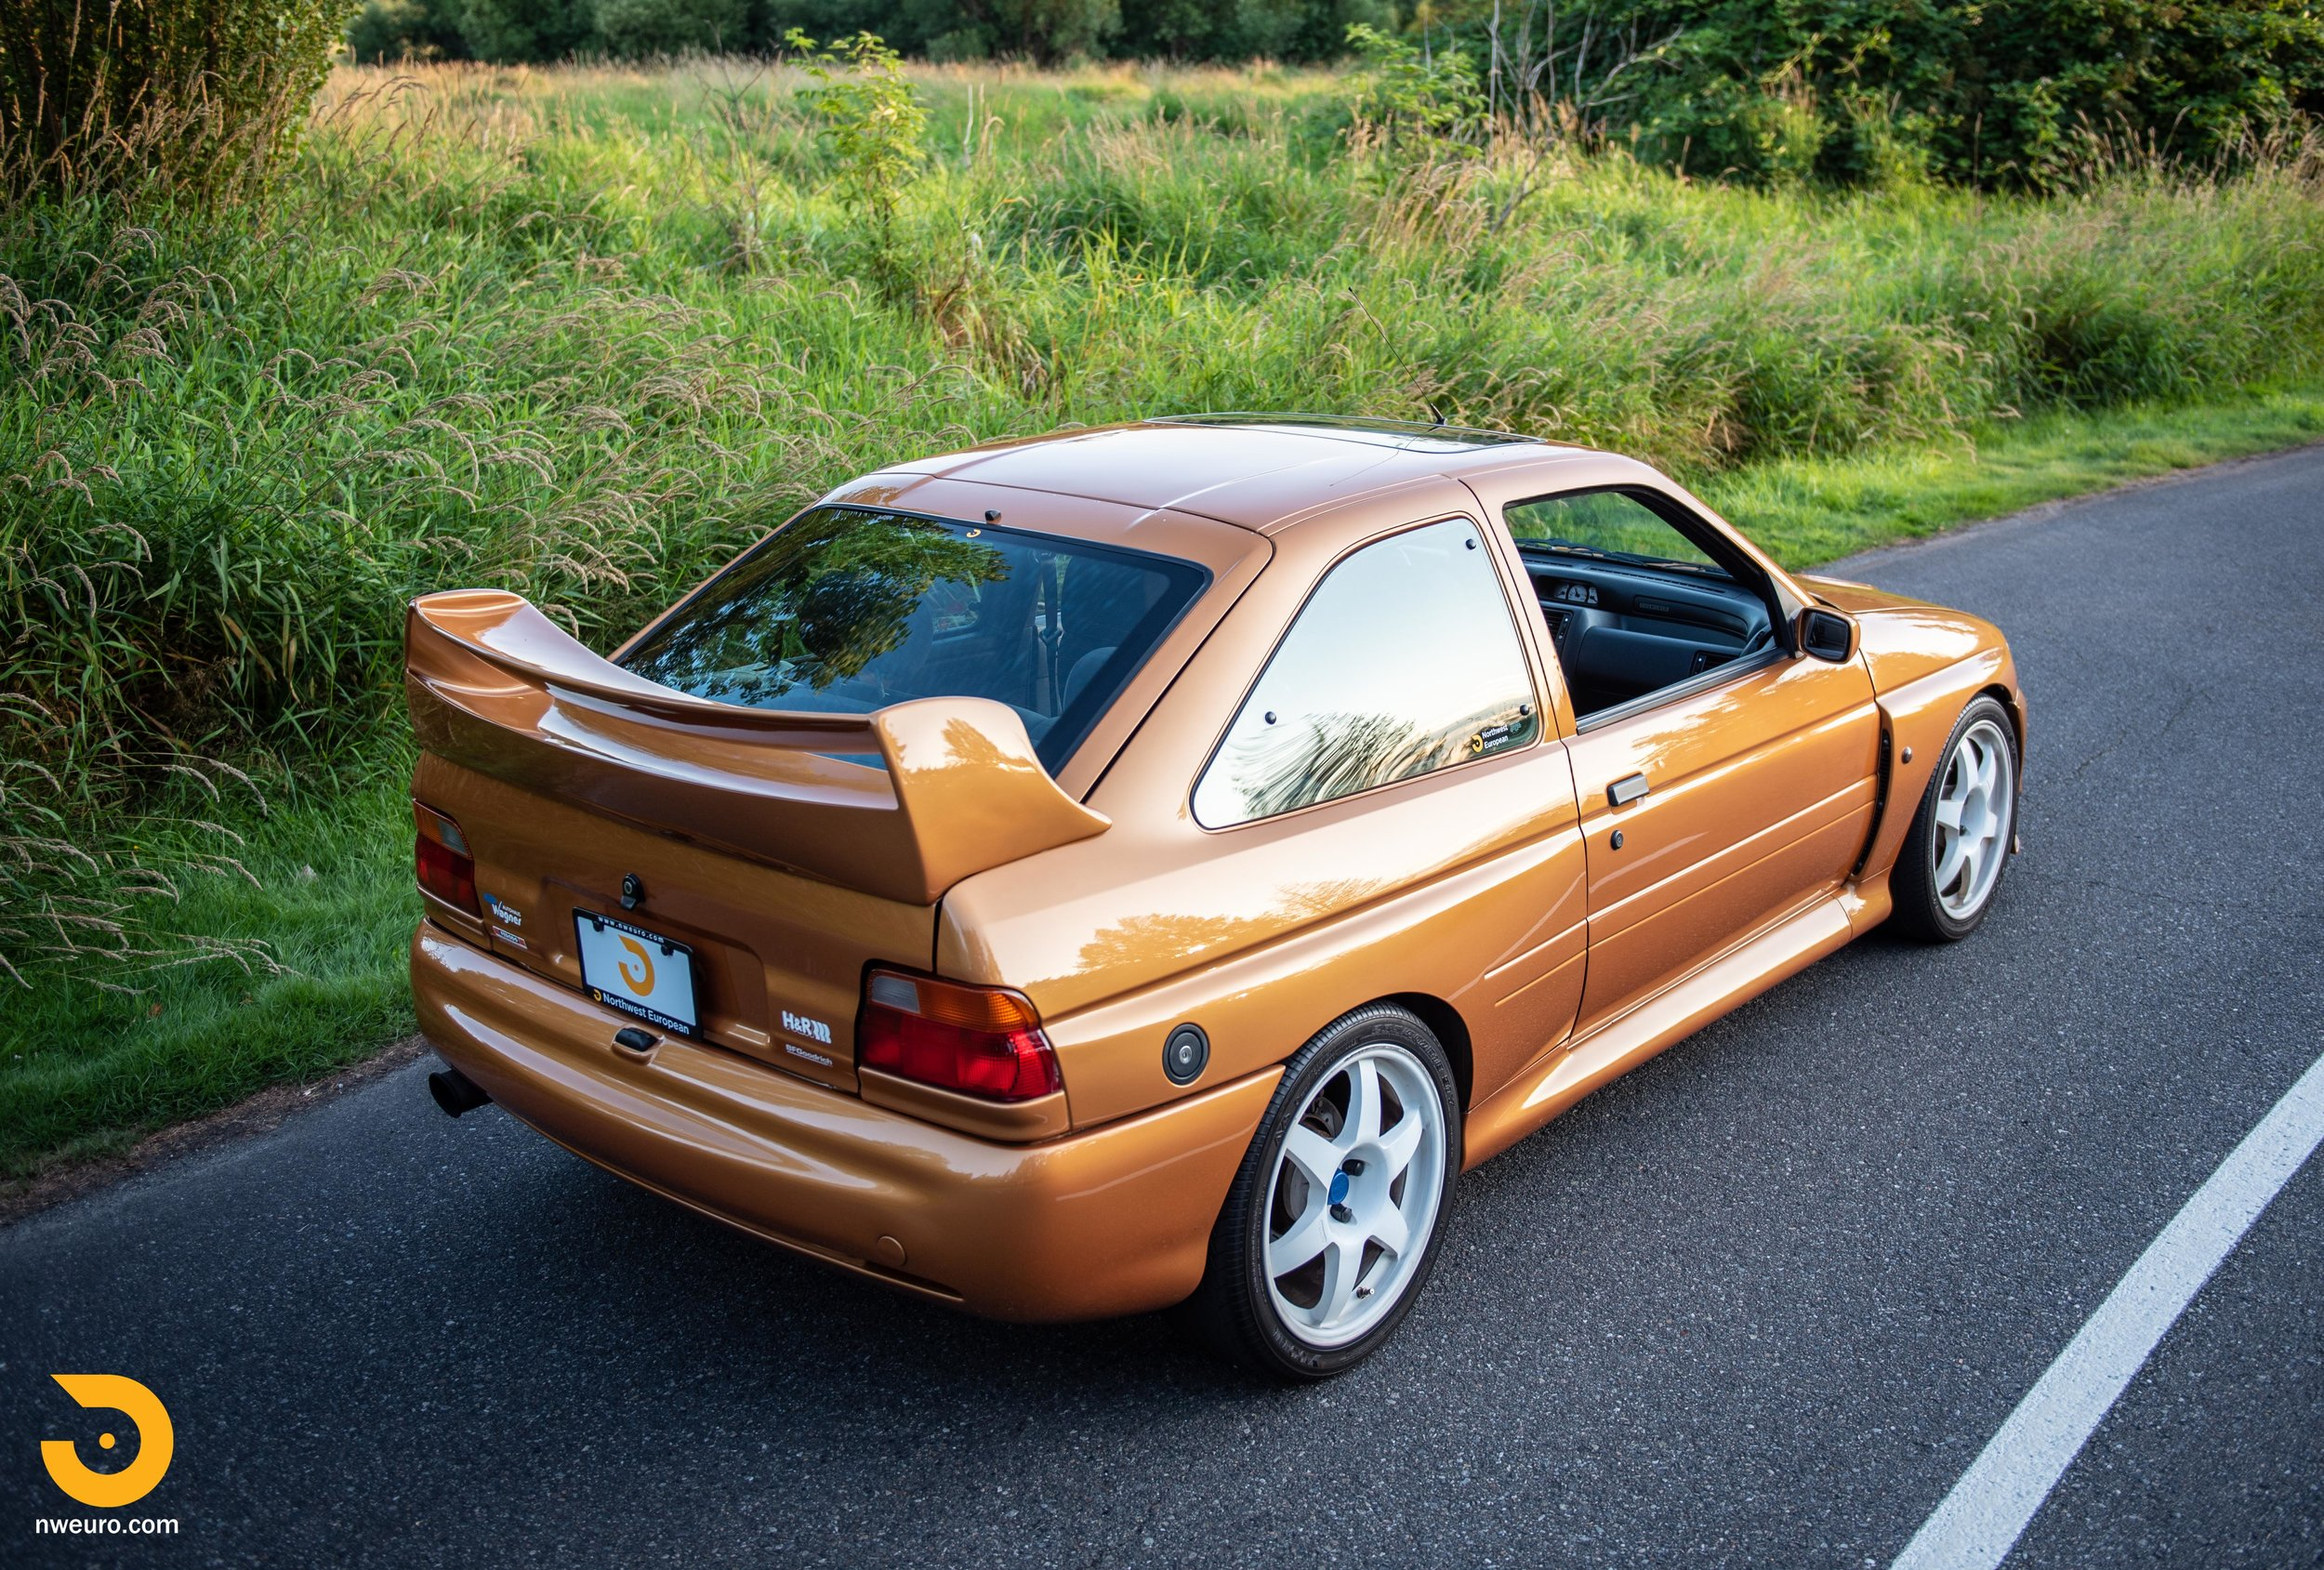 1995 Ford Escort Cosworth RS Gold-18.jpg